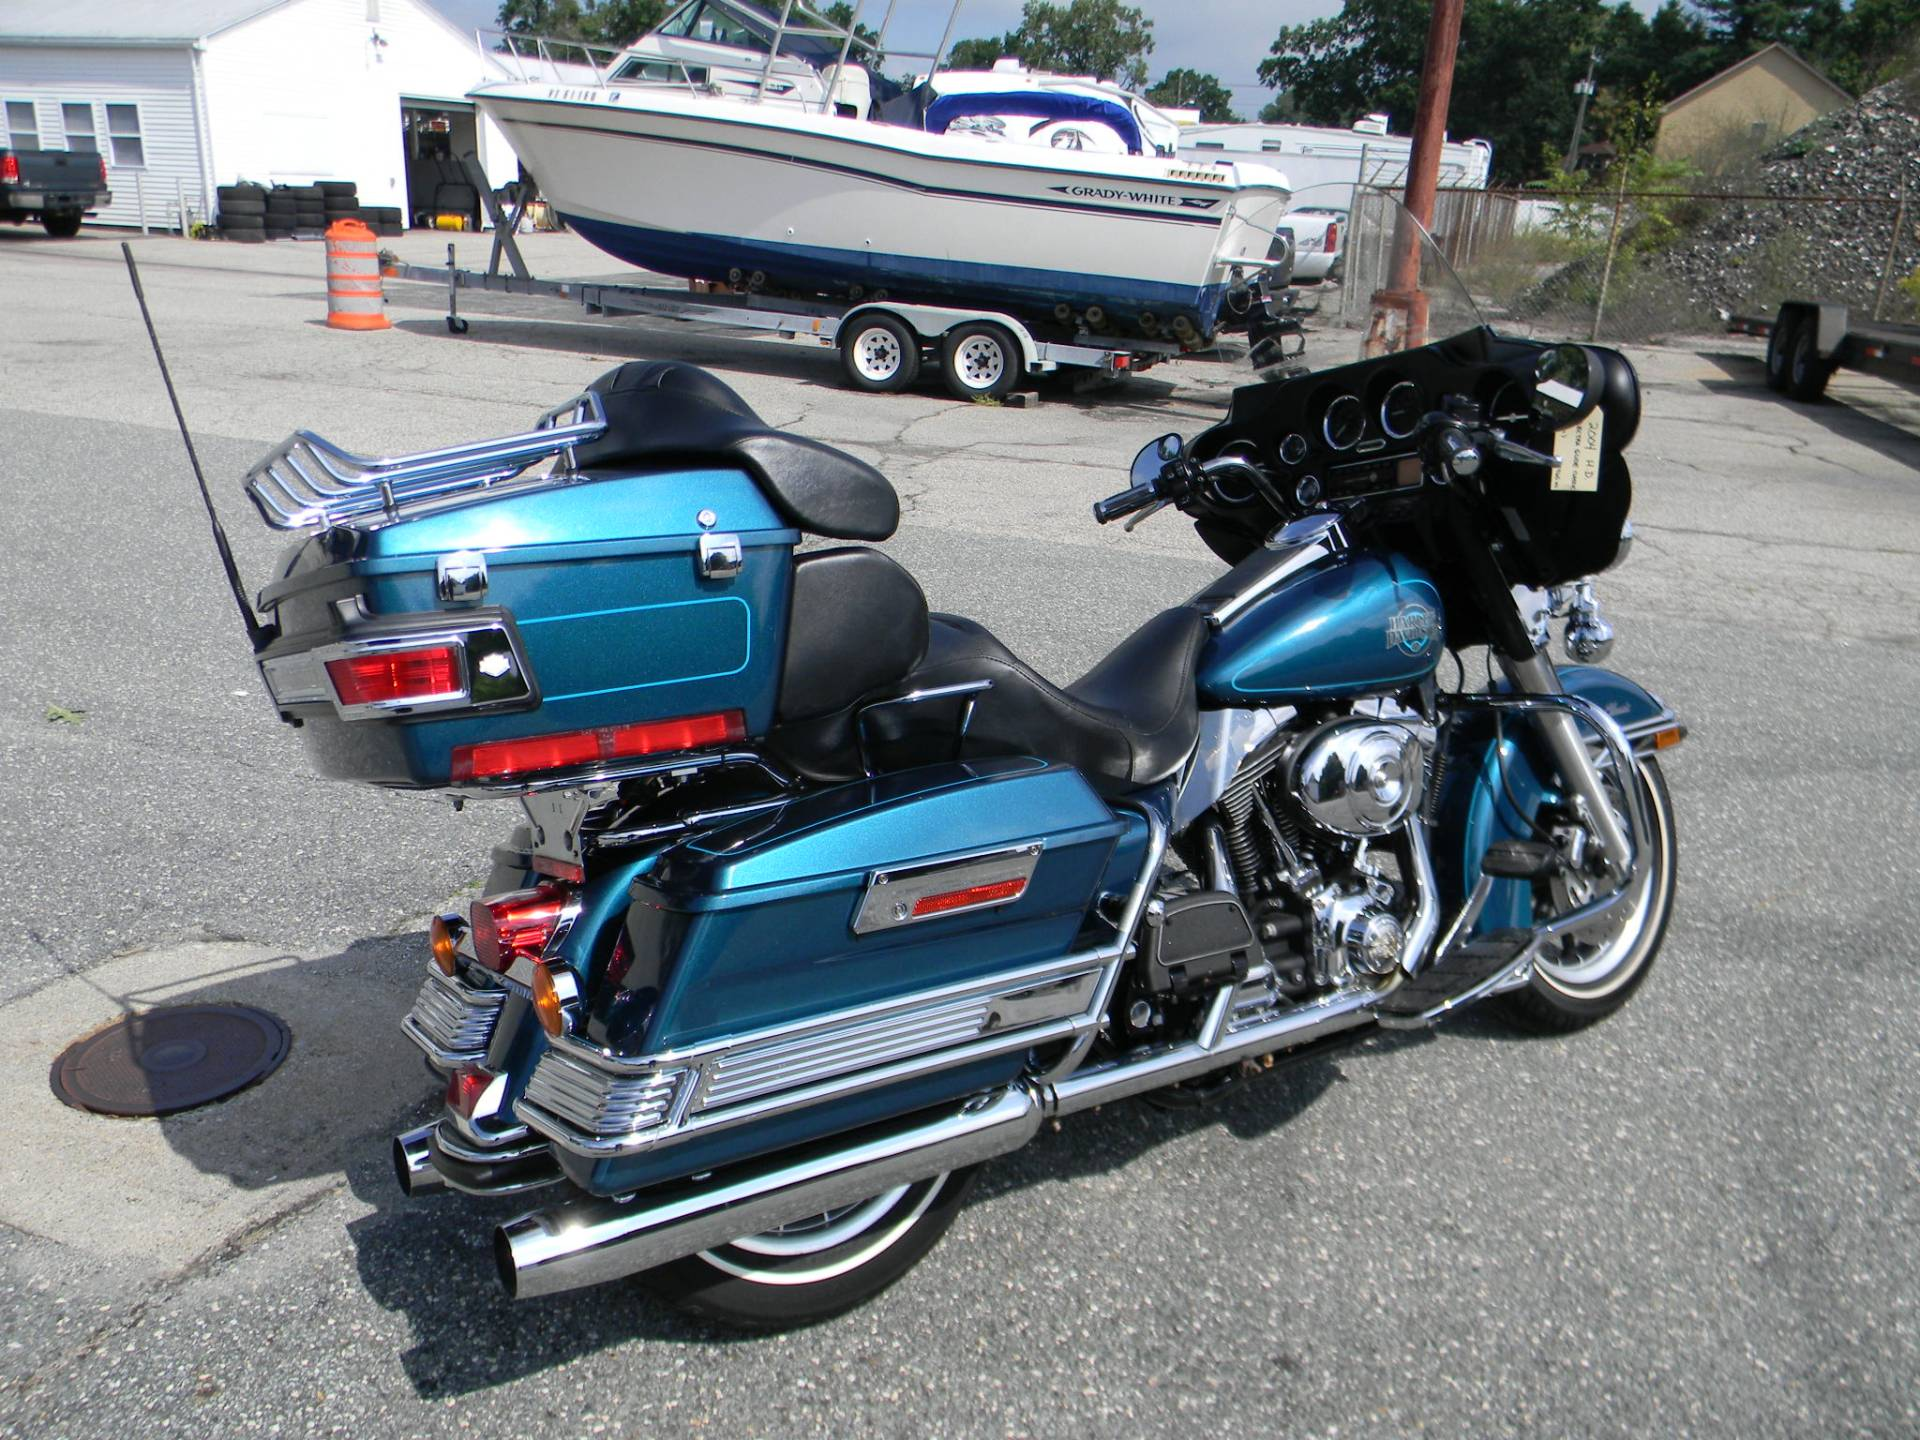 2004 Harley-Davidson FLHTC/FLHTCI Electra Glide® Classic in Springfield, Massachusetts - Photo 3